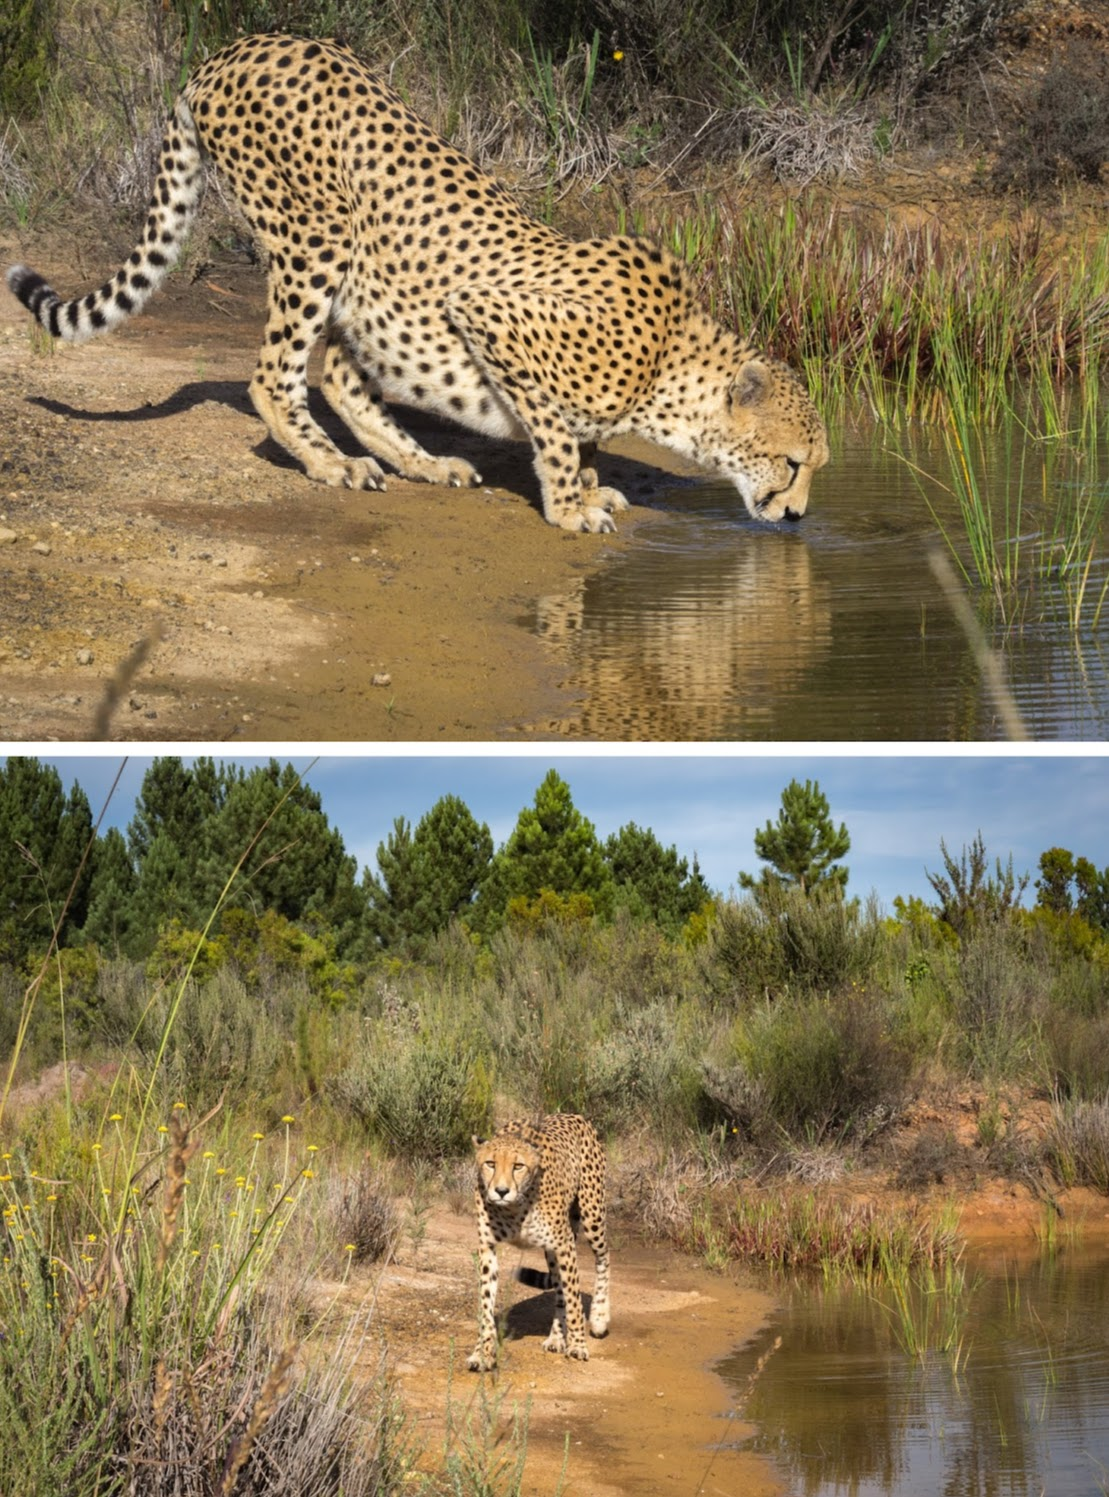 Walking with cheetah was also a highlight of this South African itinerary. What a privilege!